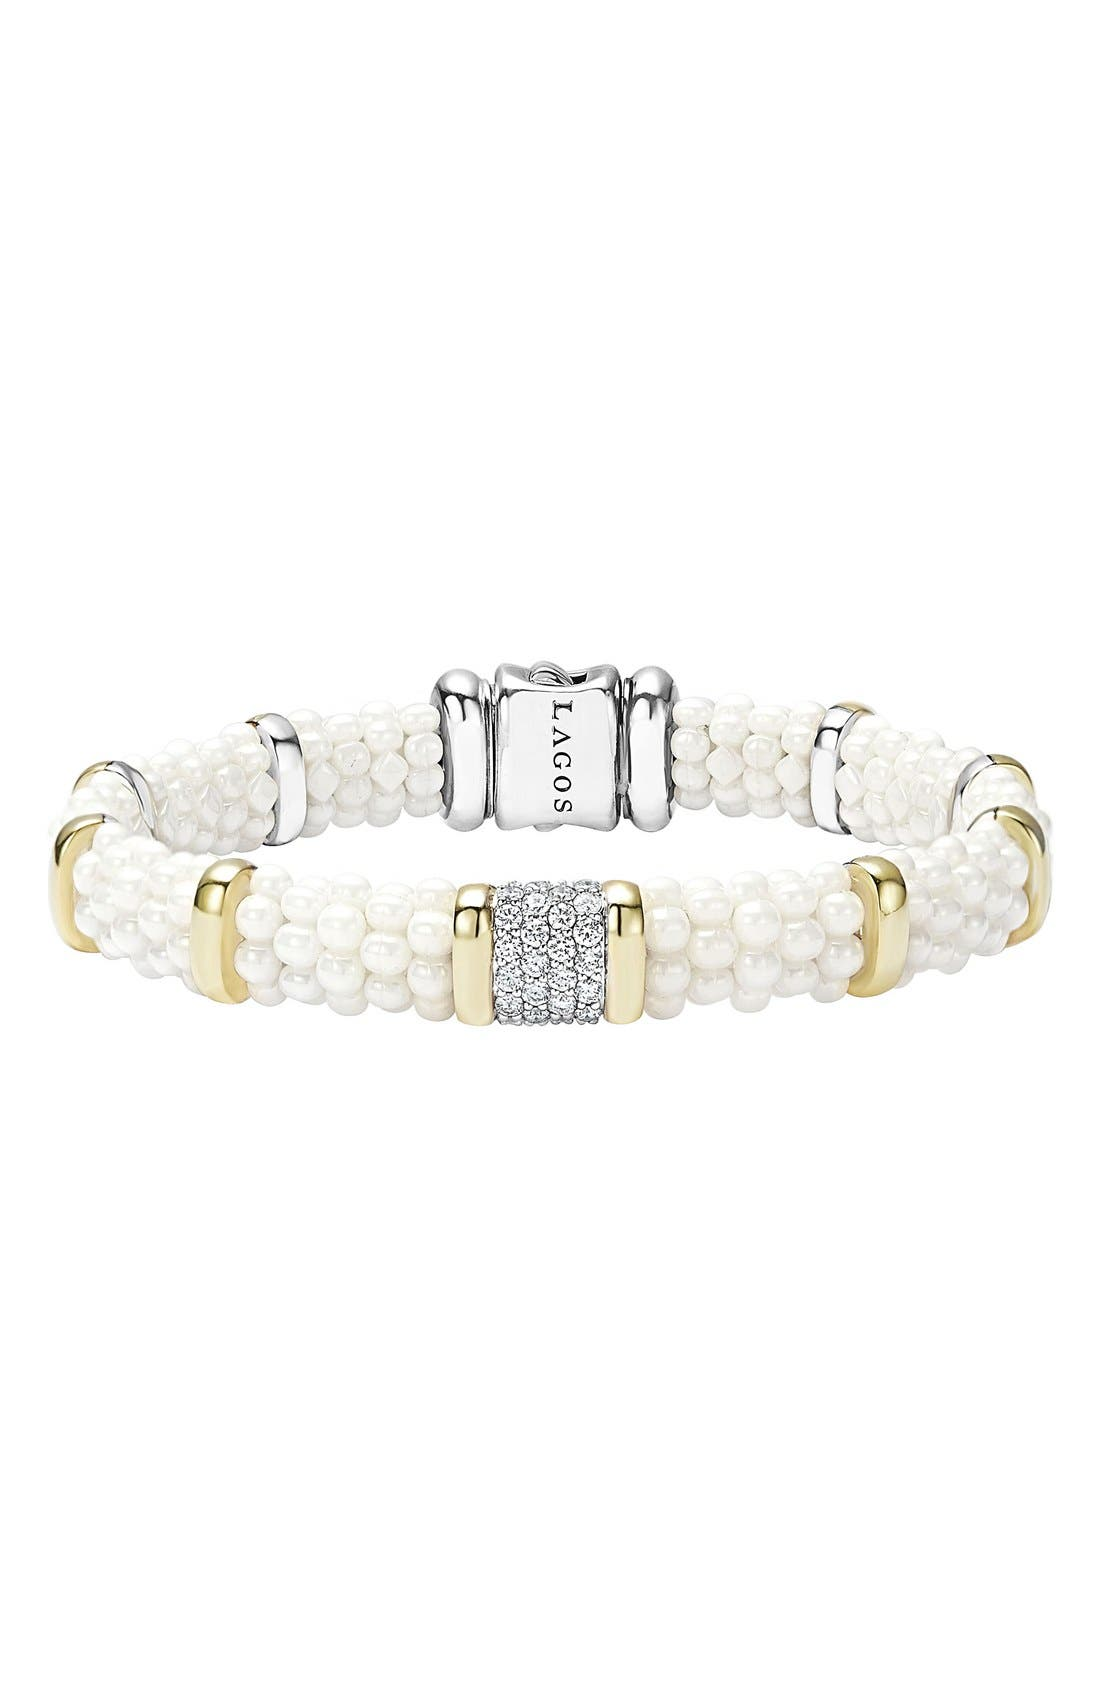 'White Caviar' Diamond Station Bracelet,                         Main,                         color, White Caviar